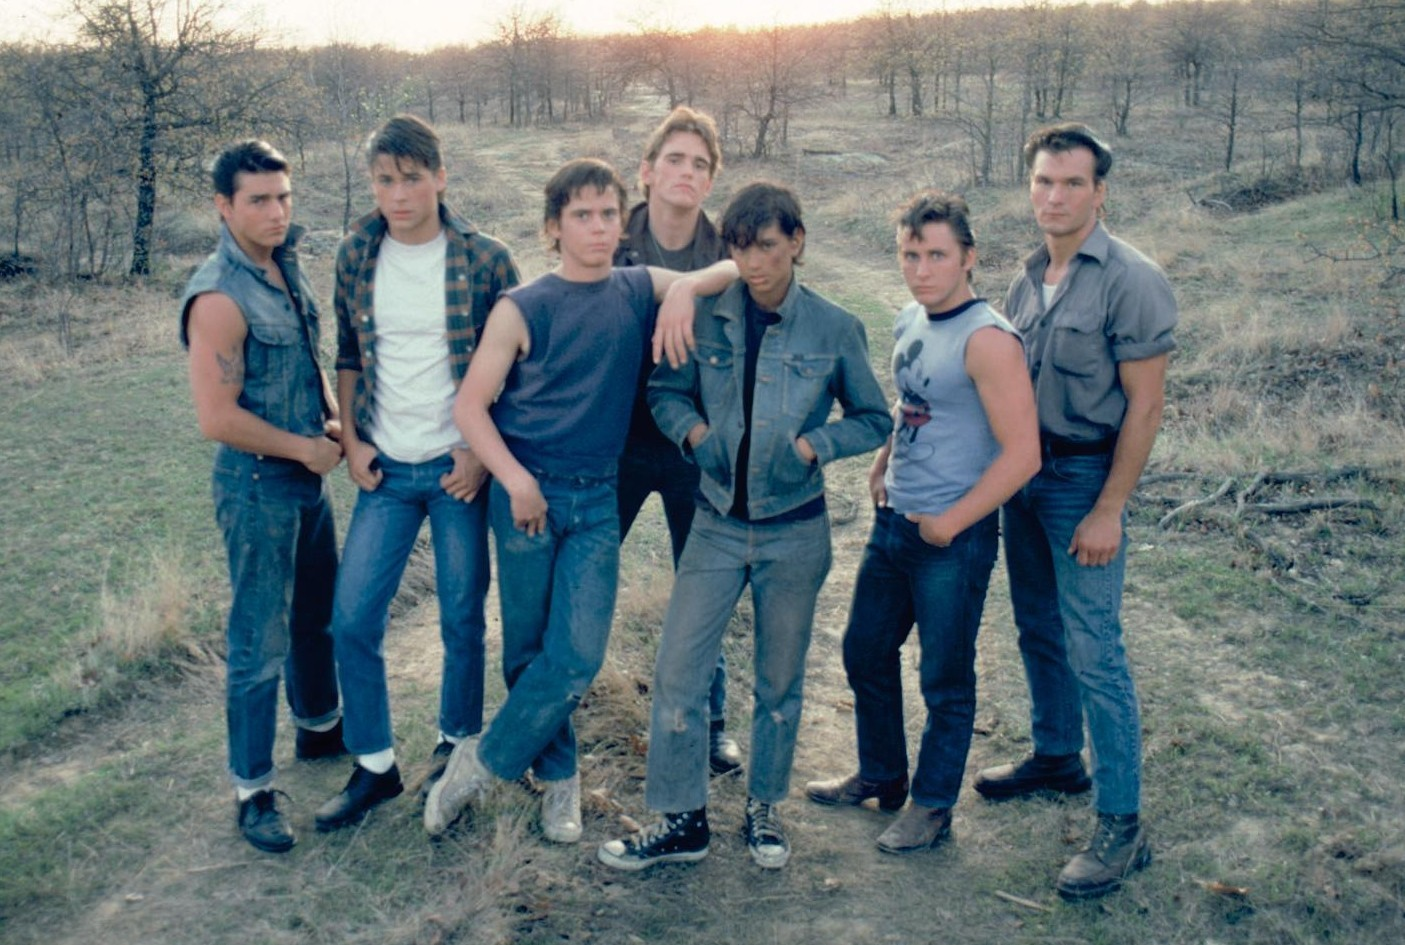 Greasers   The Outsiders Photo  17516515    Fanpop